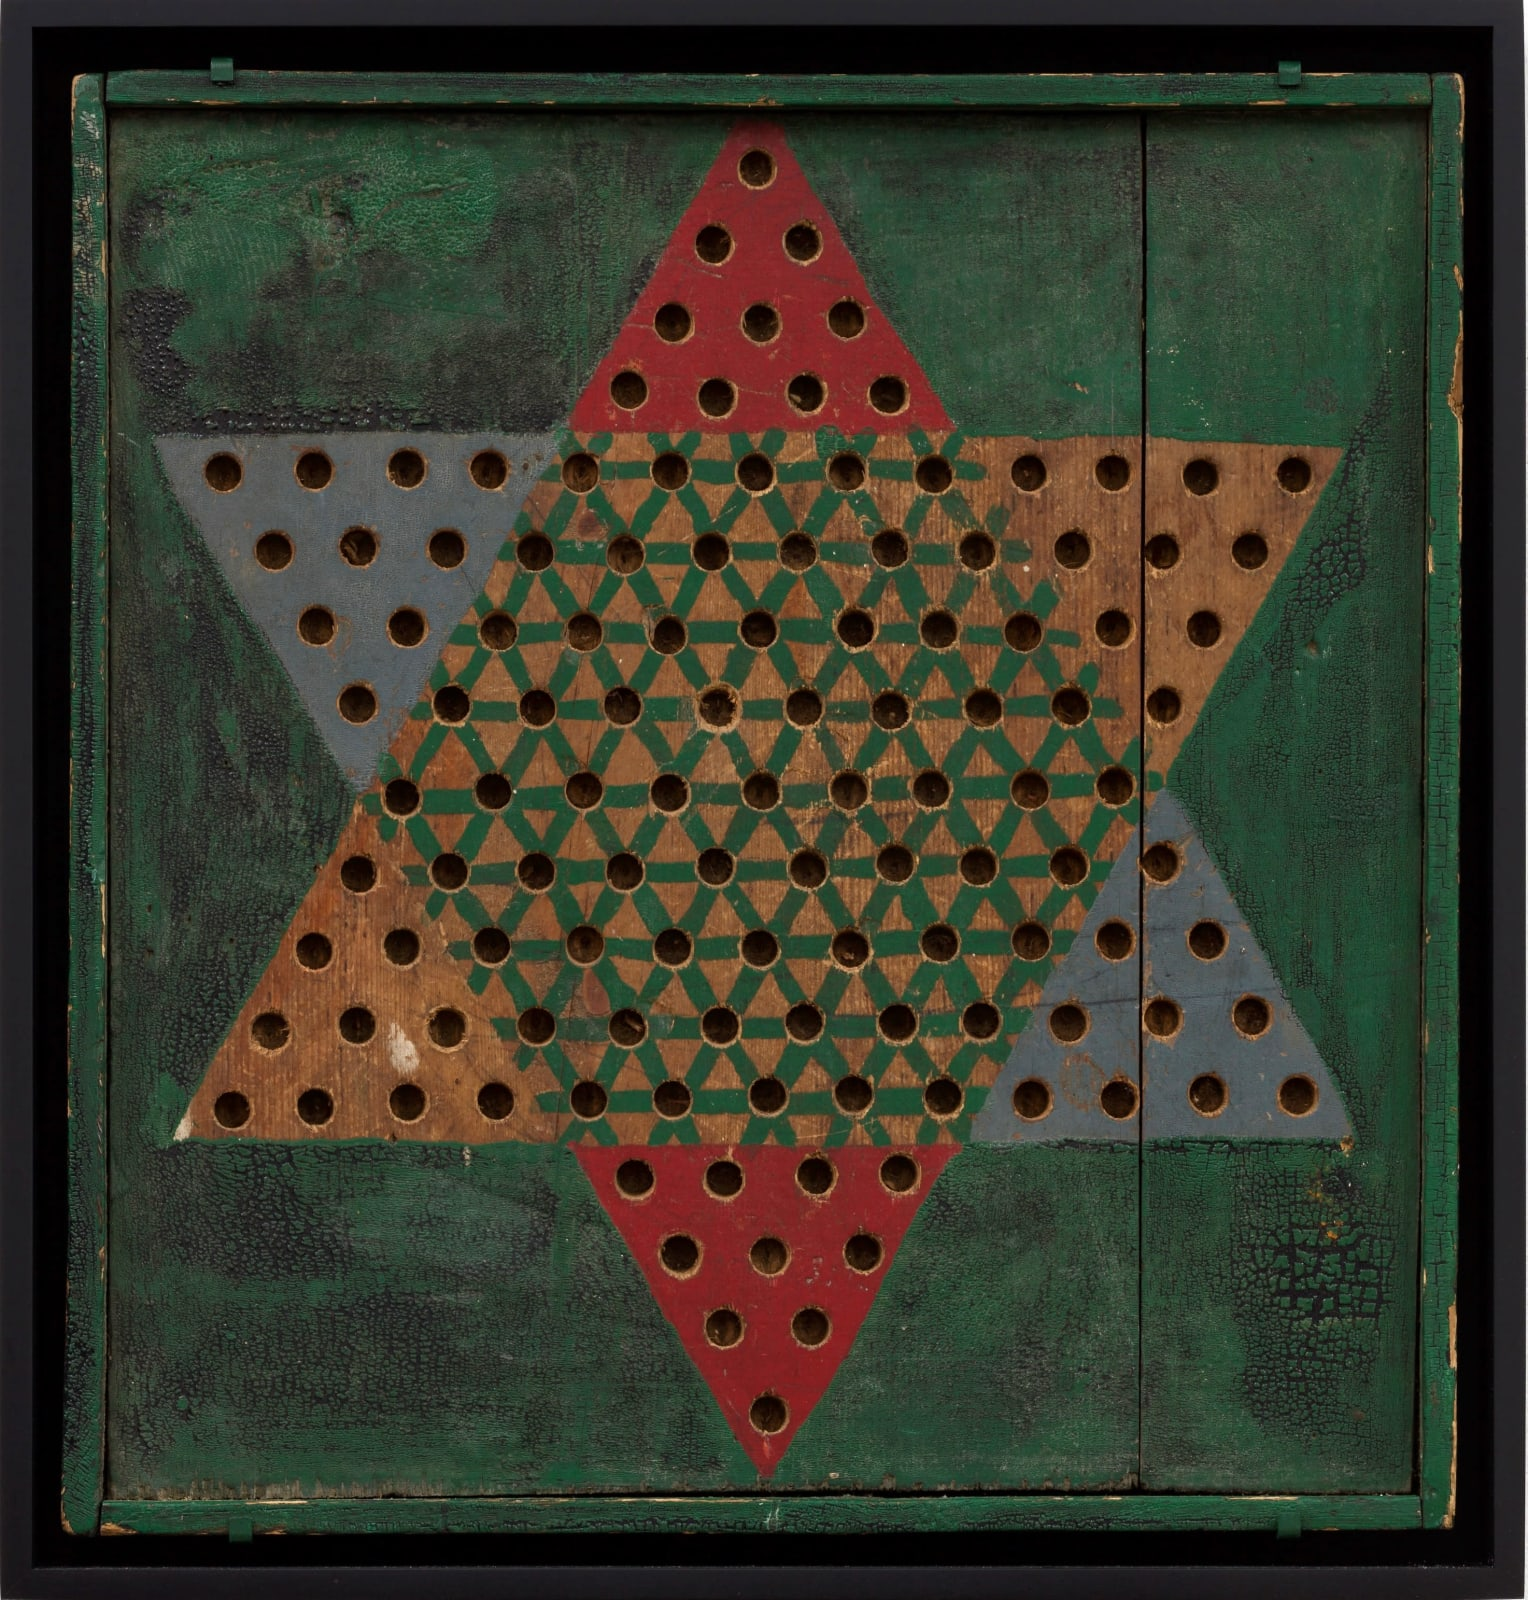 CHINESE CHECKERS GAME BOARD, C. 1930-40 Oil enamel on wood panel 17 x 17 in. 43.2 x 43.2 cm. (AU 228)